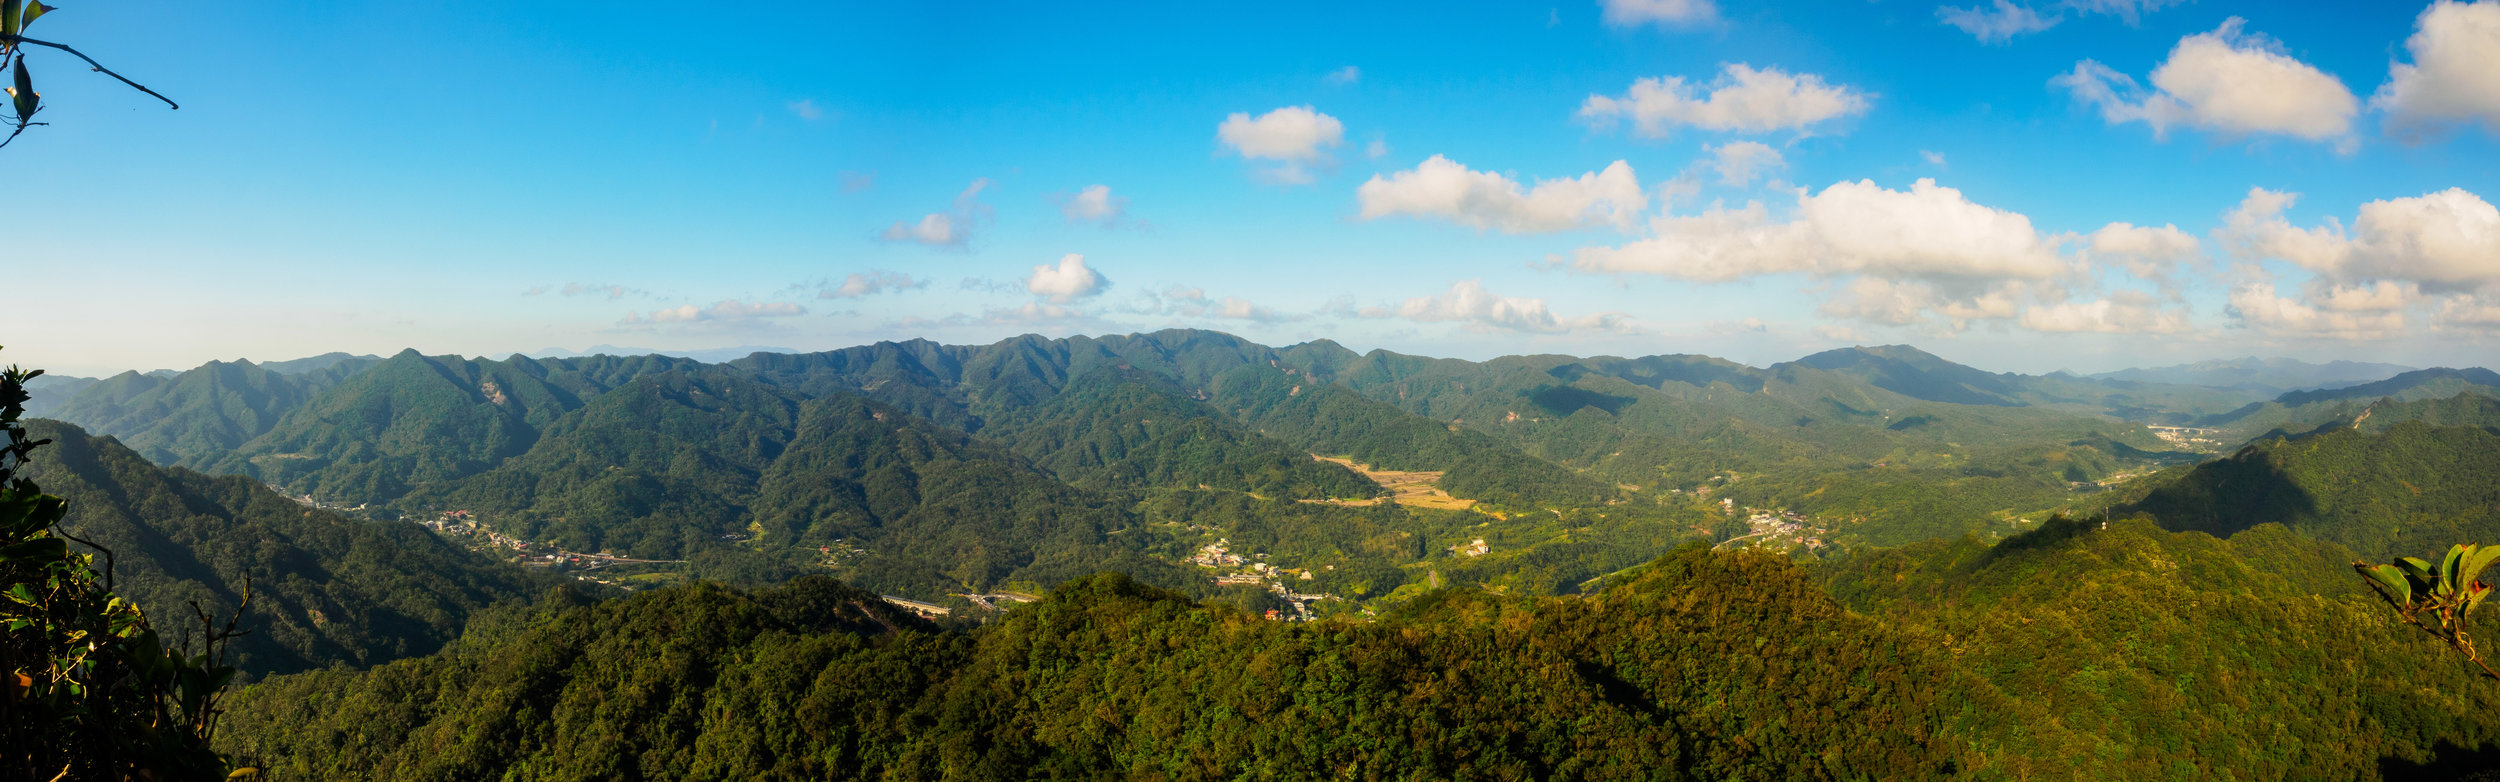 A view looking down from Jianshan ridge. f14, ISO 320, 1/60, 24mm